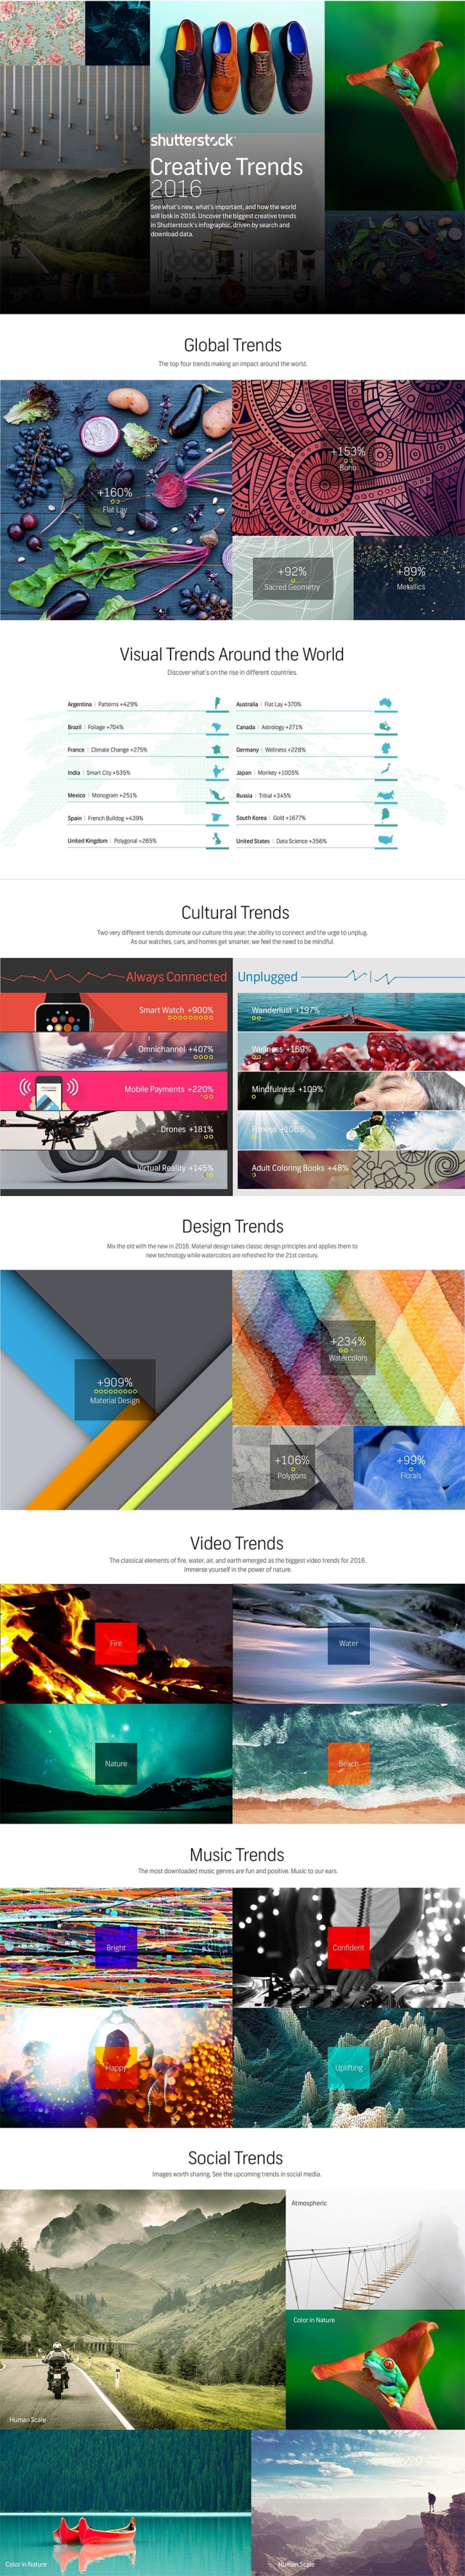 Creative Trends 2016 Visual & Design Trends from Around the World